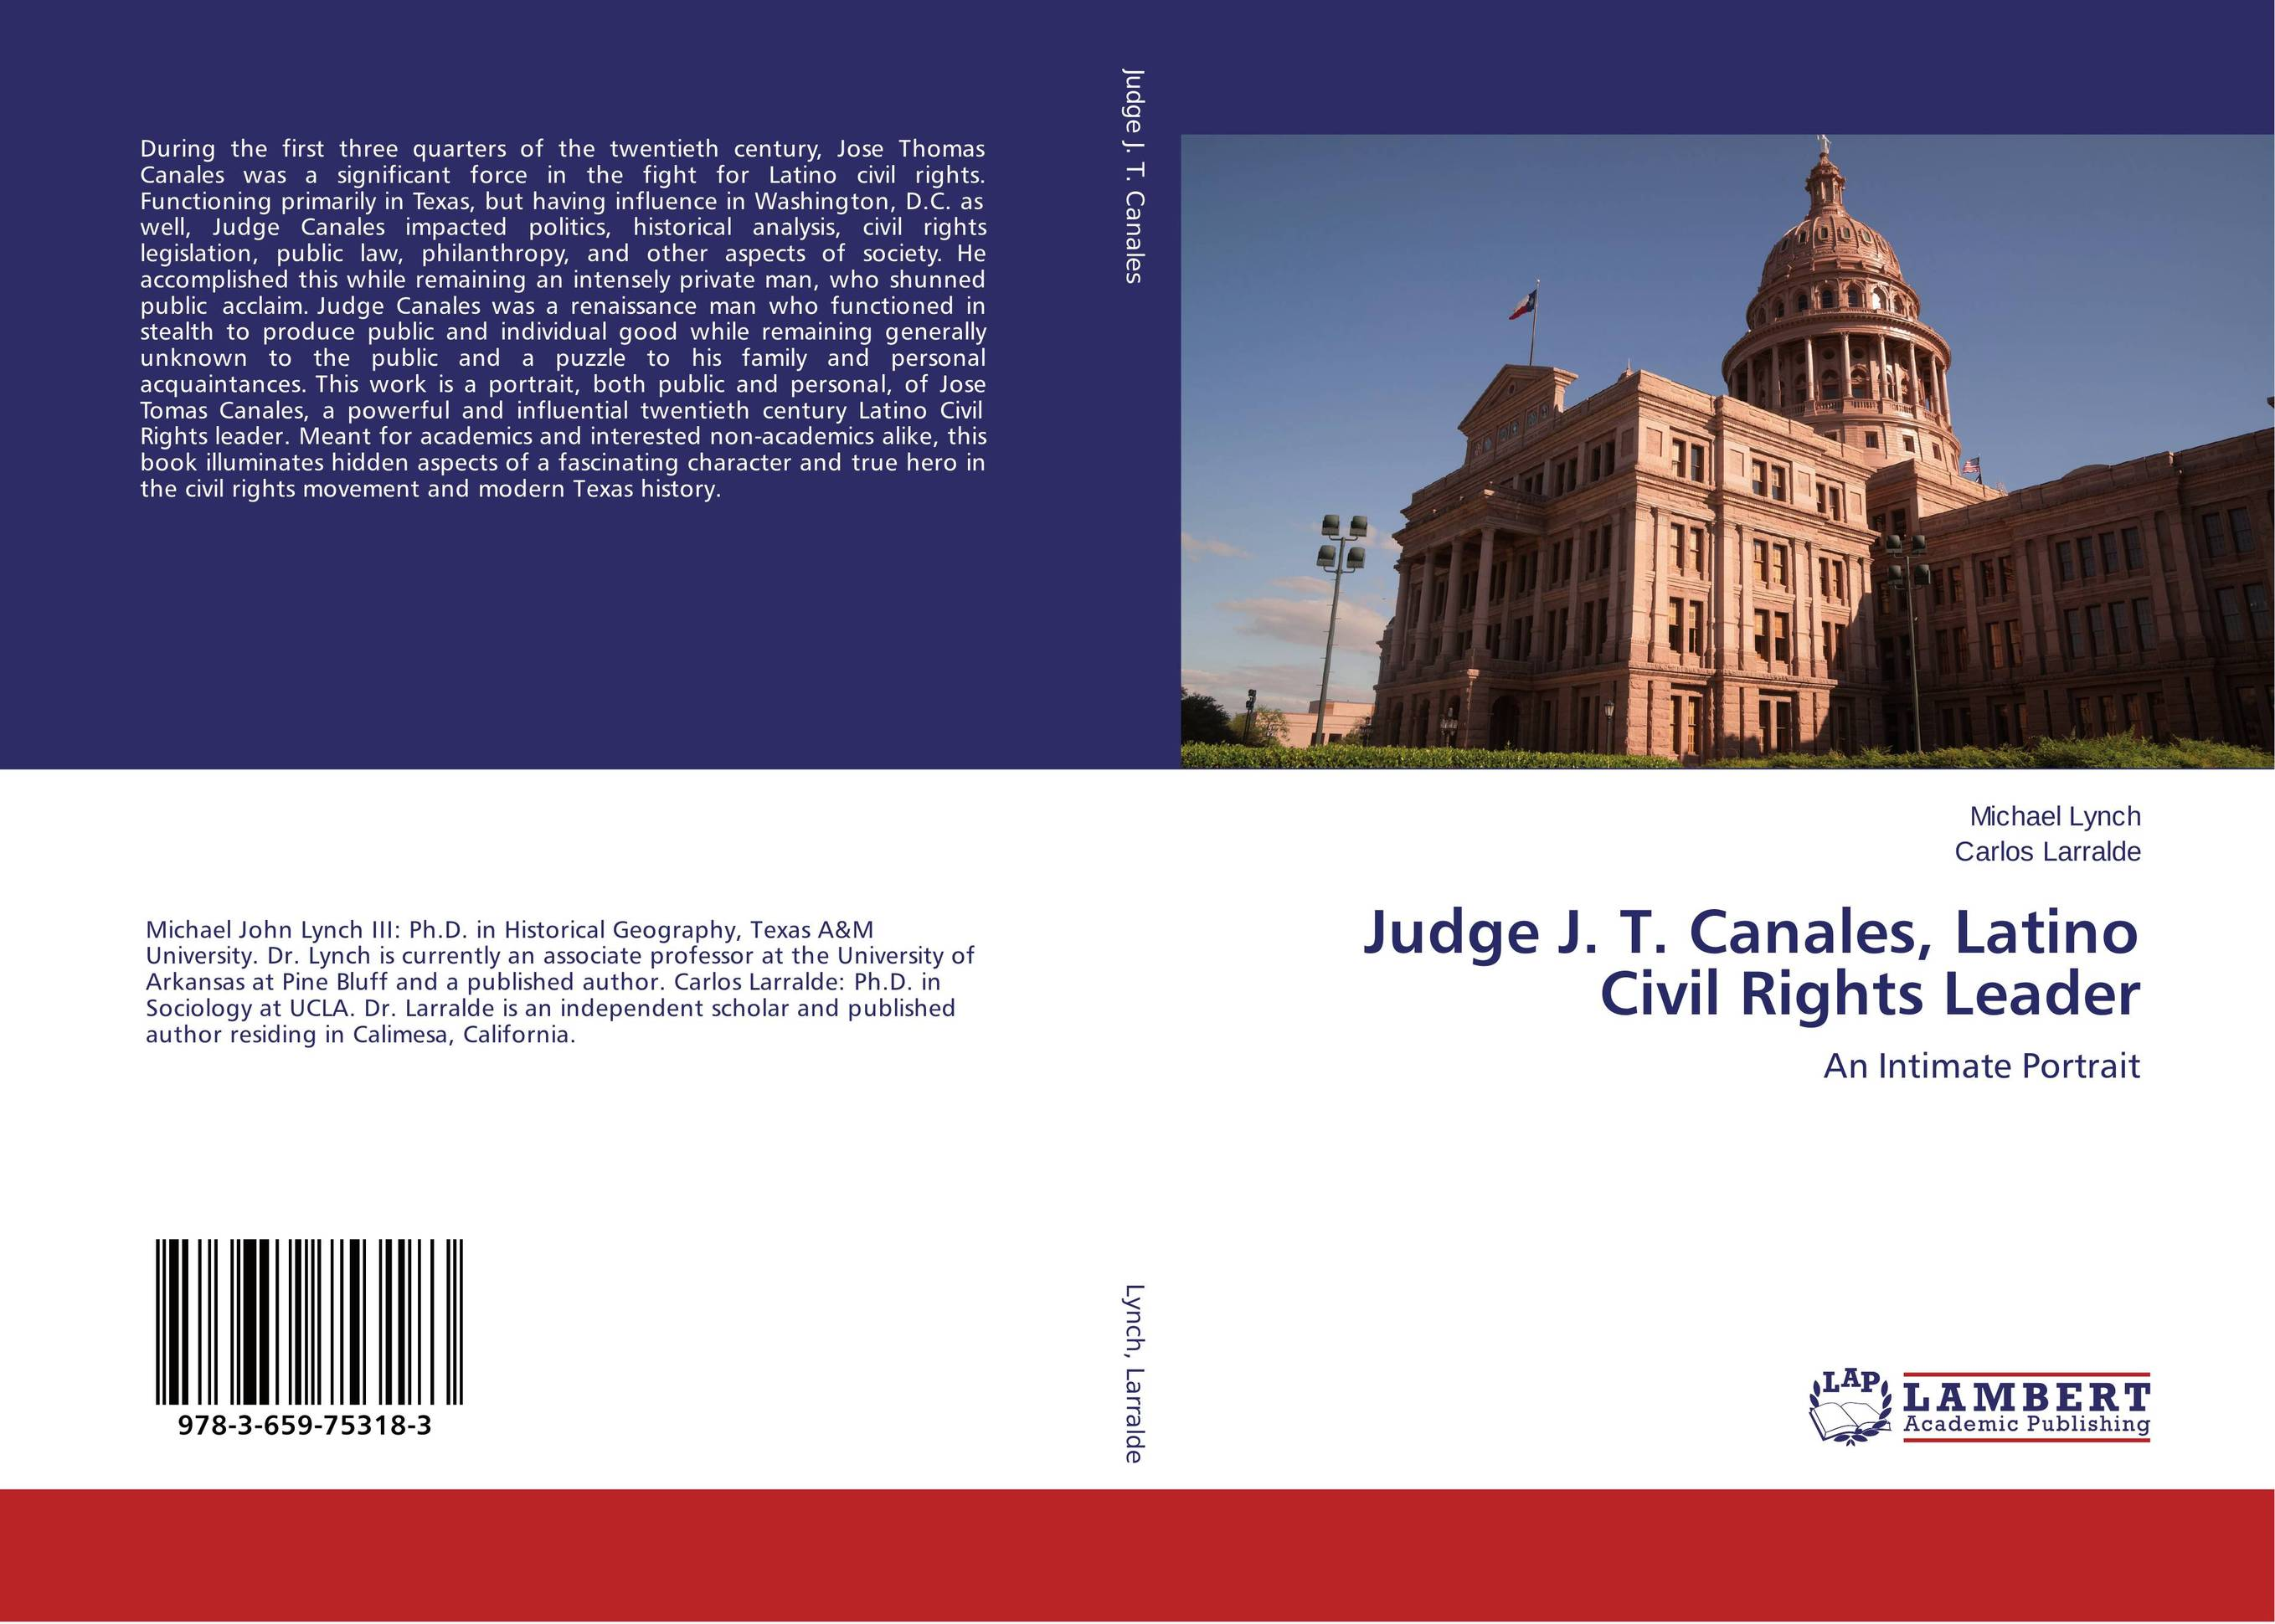 Judge J. T. Canales, Latino Civil Rights Leader daily demonstrators – the civil rights movement in mennonite homes and sanctuaries